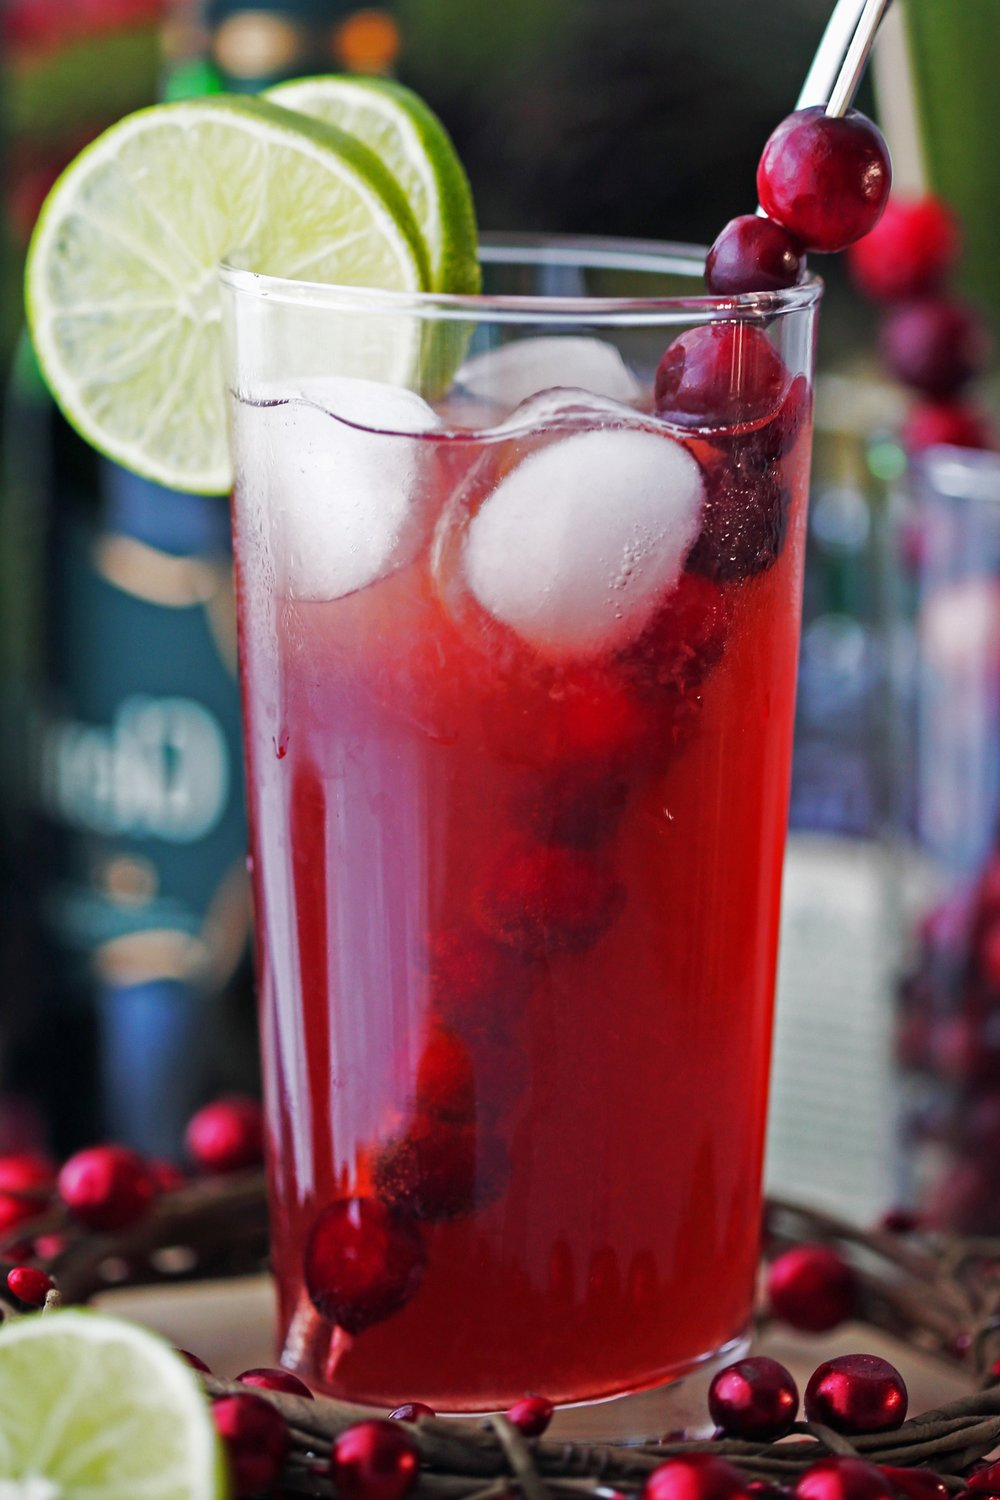 A tall highball glass of Cranberry Whiskey Ginger Cocktail with lime slices, fresh cranberries, and ice cubes.